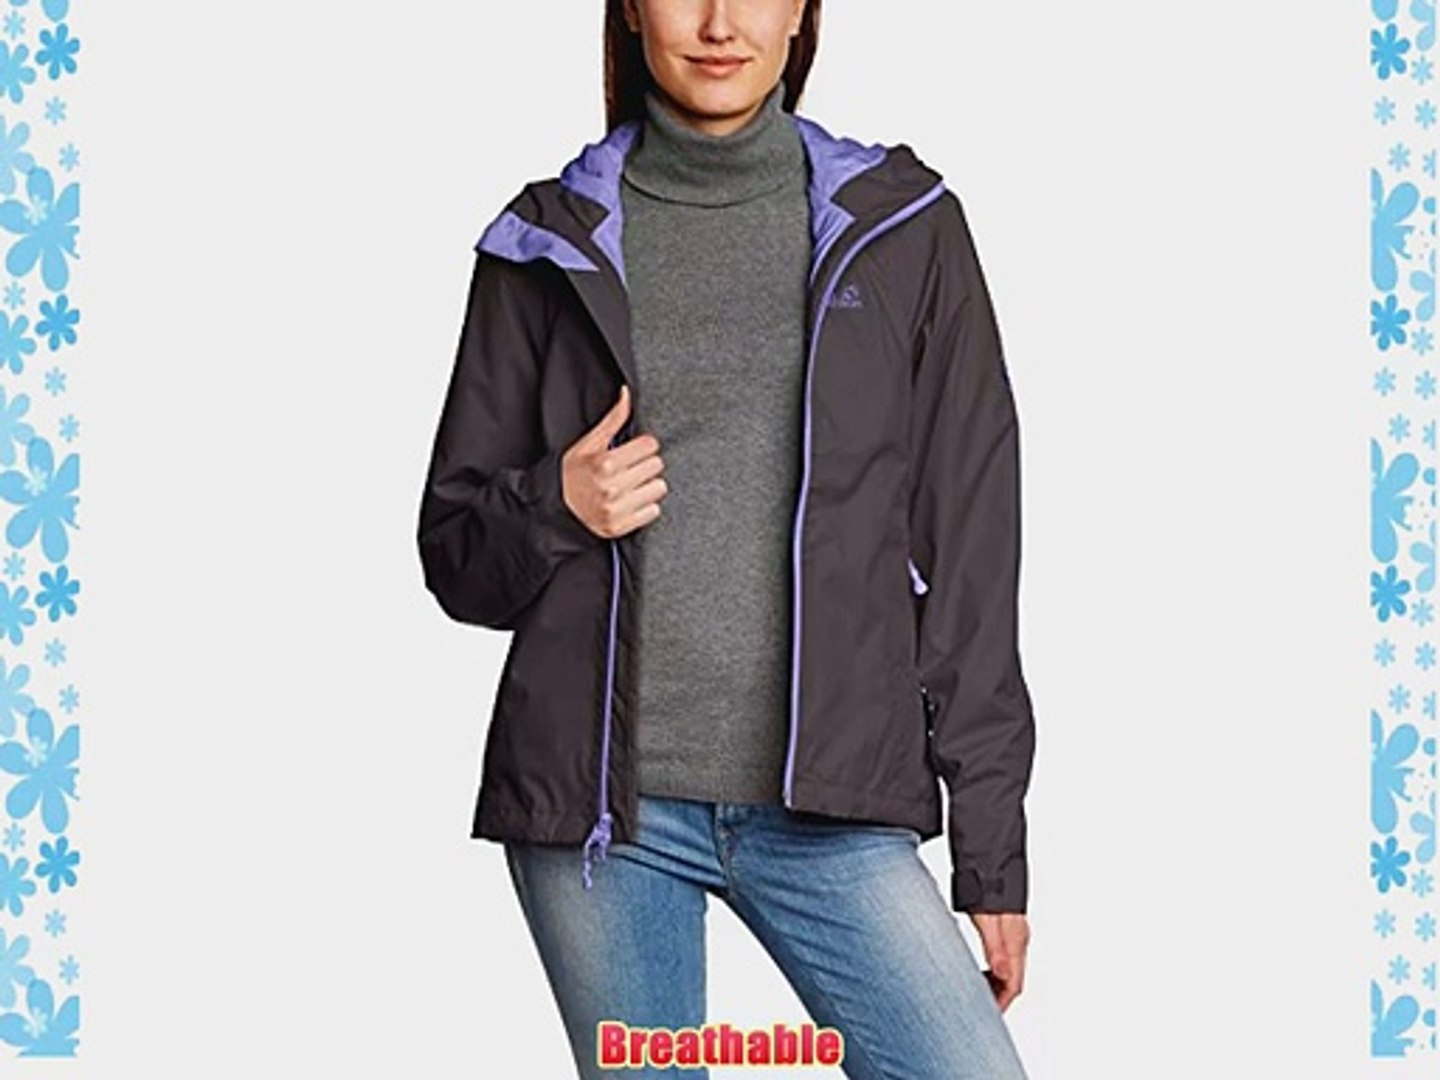 Jack Jacket Grey Ladies Xs Wolfskin Morning Chilly lJ3FcTK1